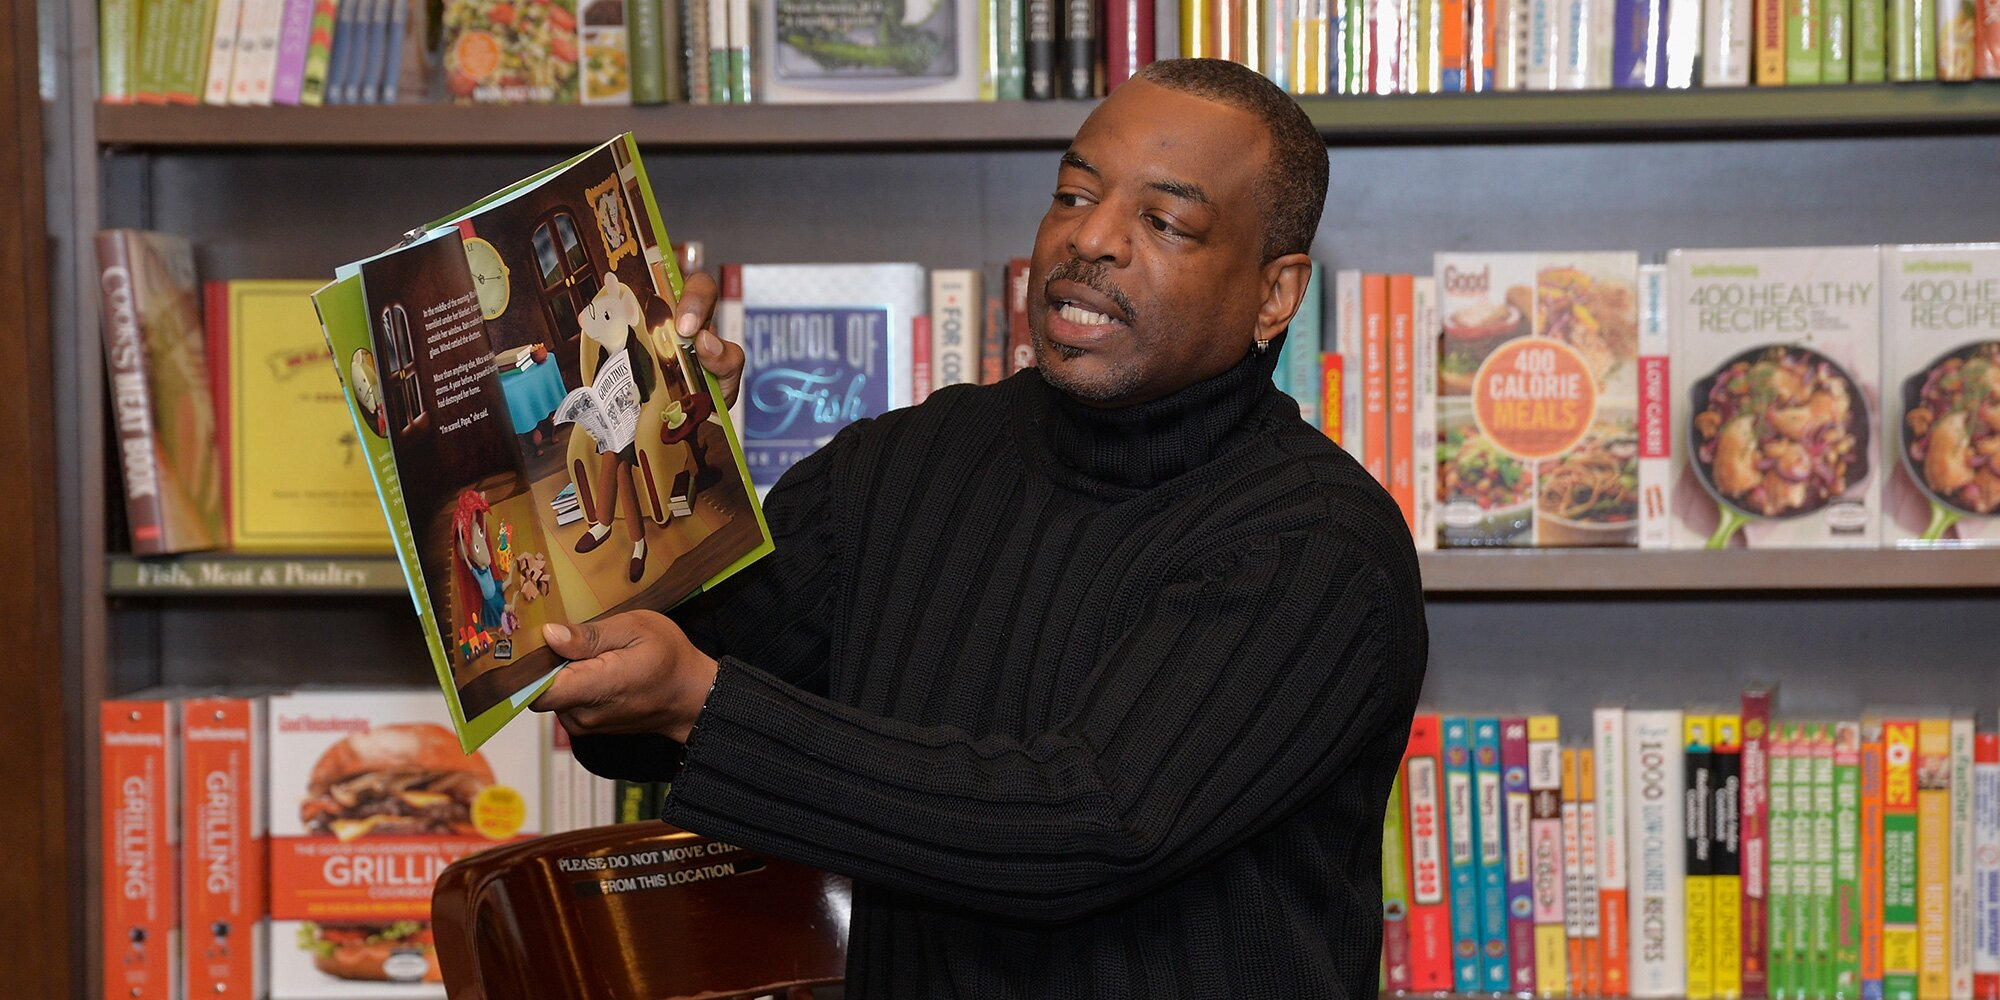 Take a look: The LeVar Burton Book Club is launching with three great picks